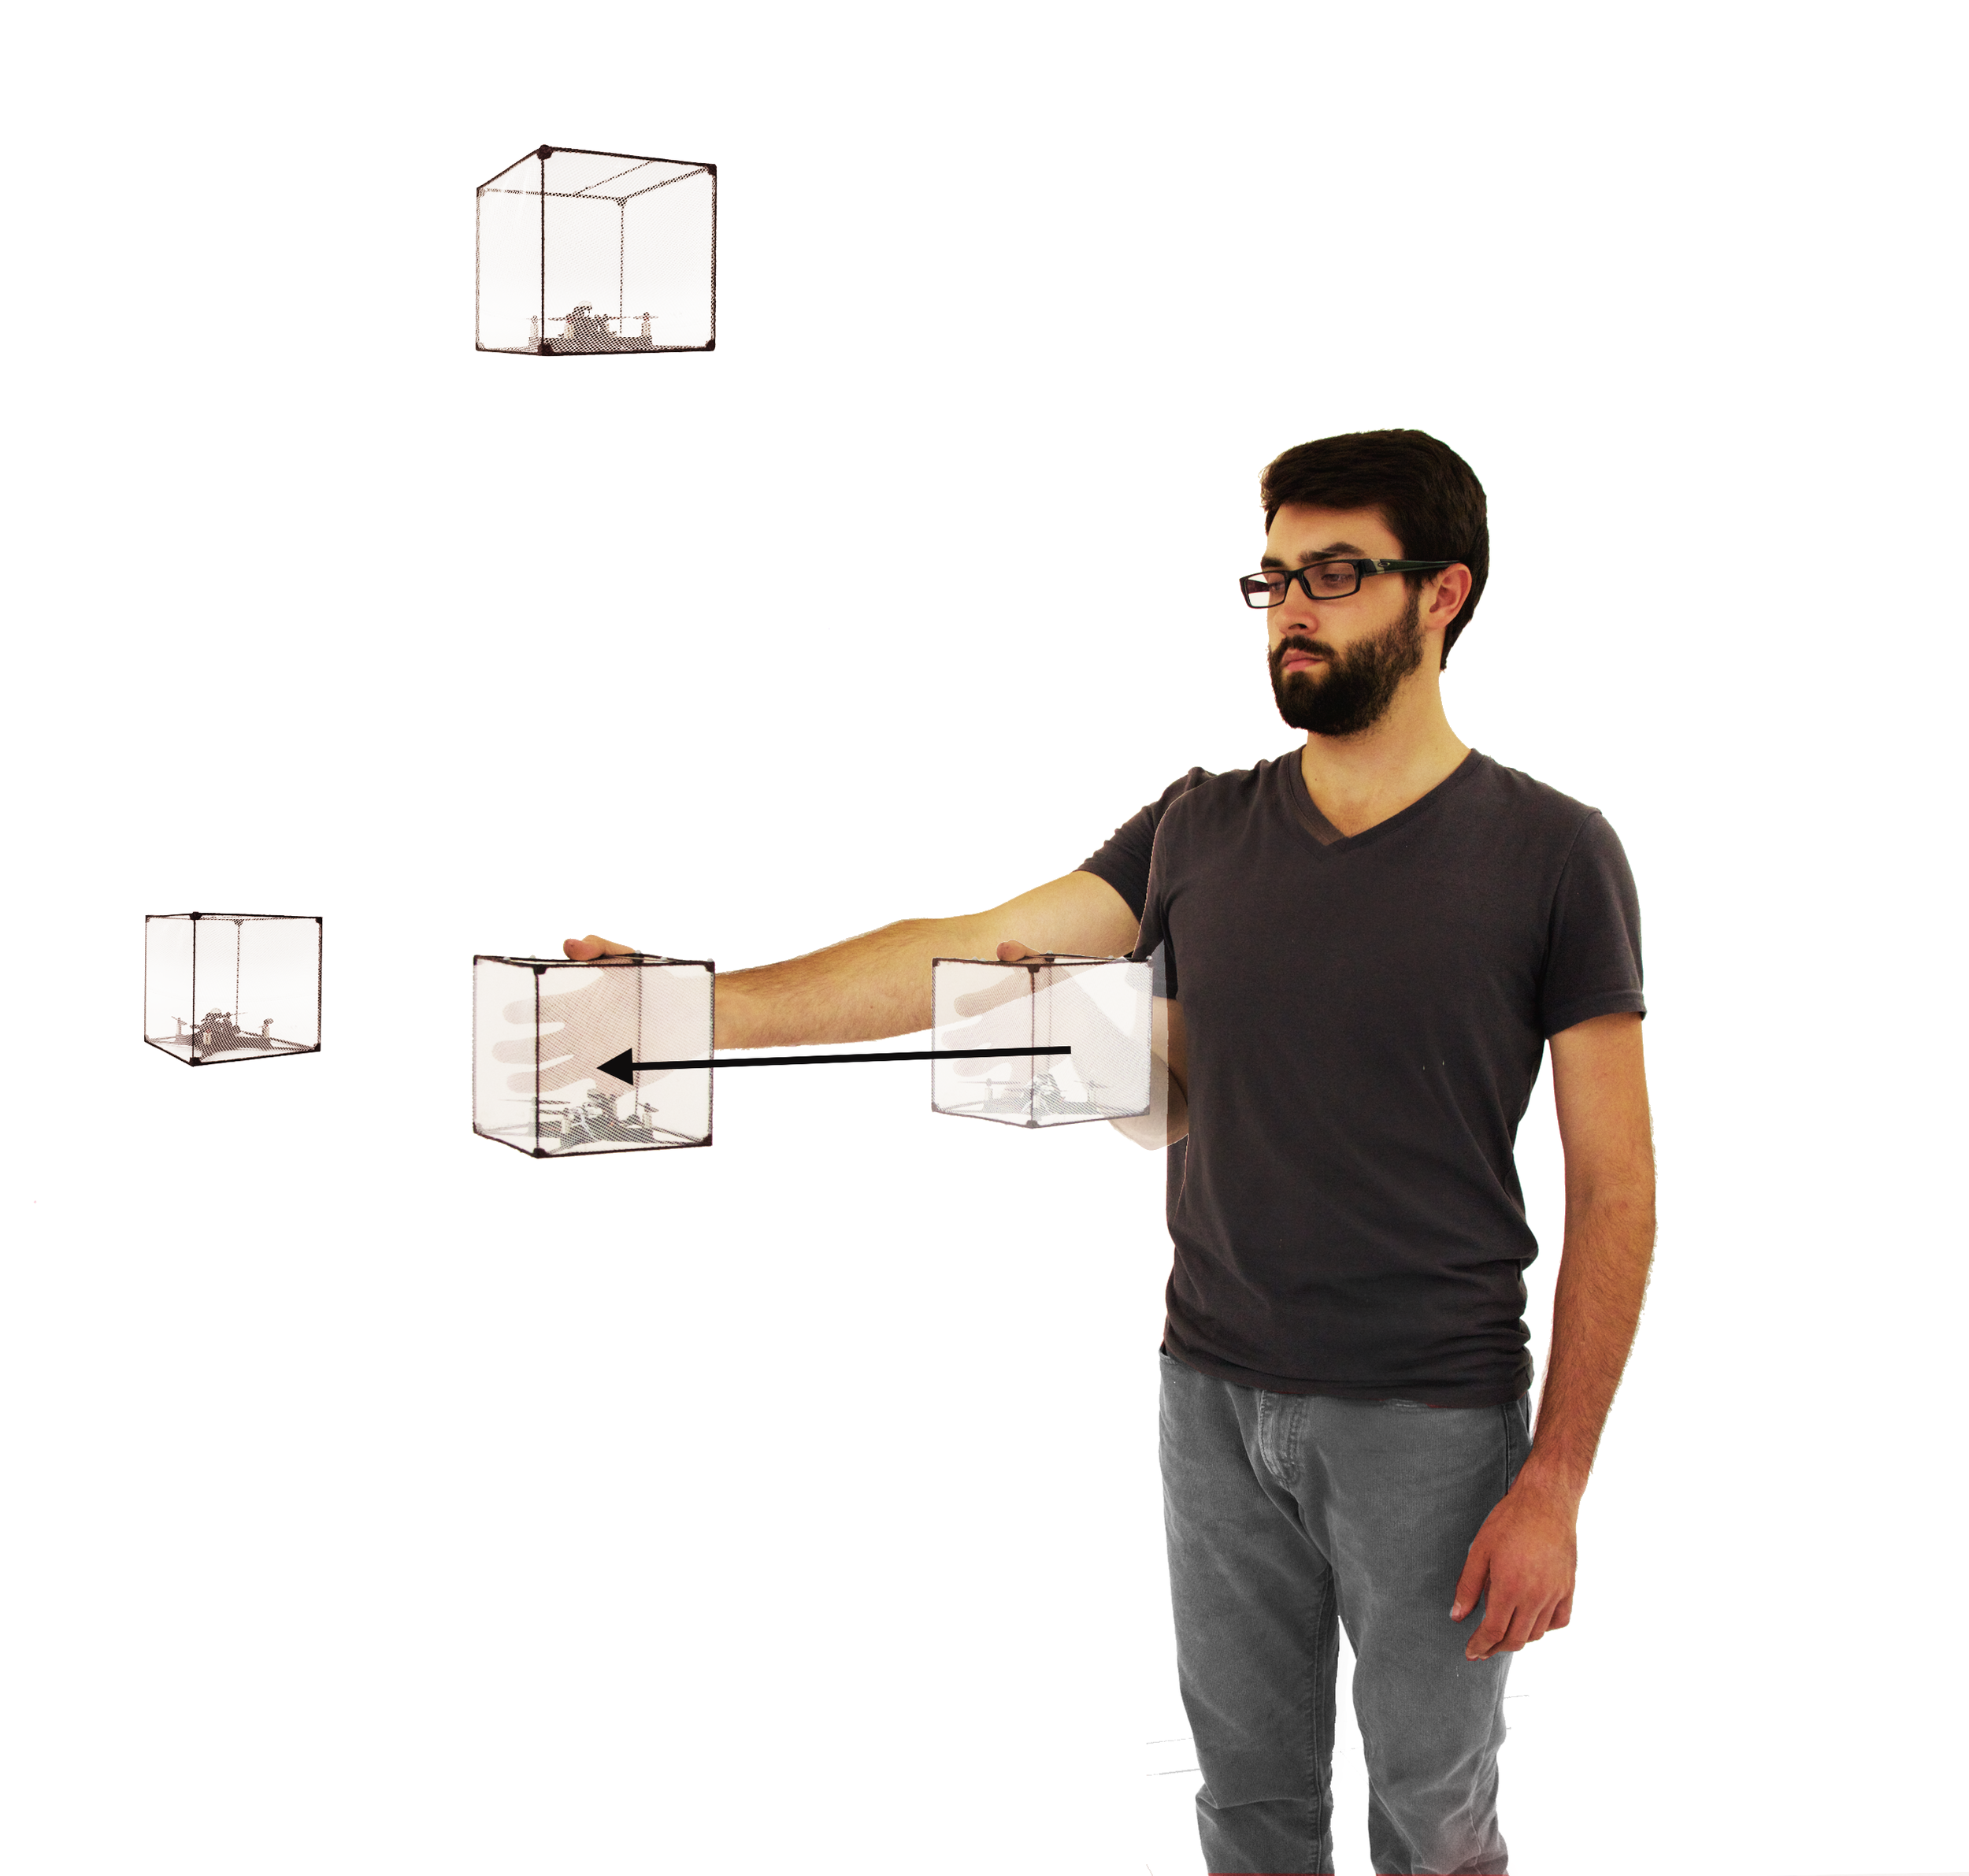 BitDrones (2015): Placing a ShapeDrone in mid-air.